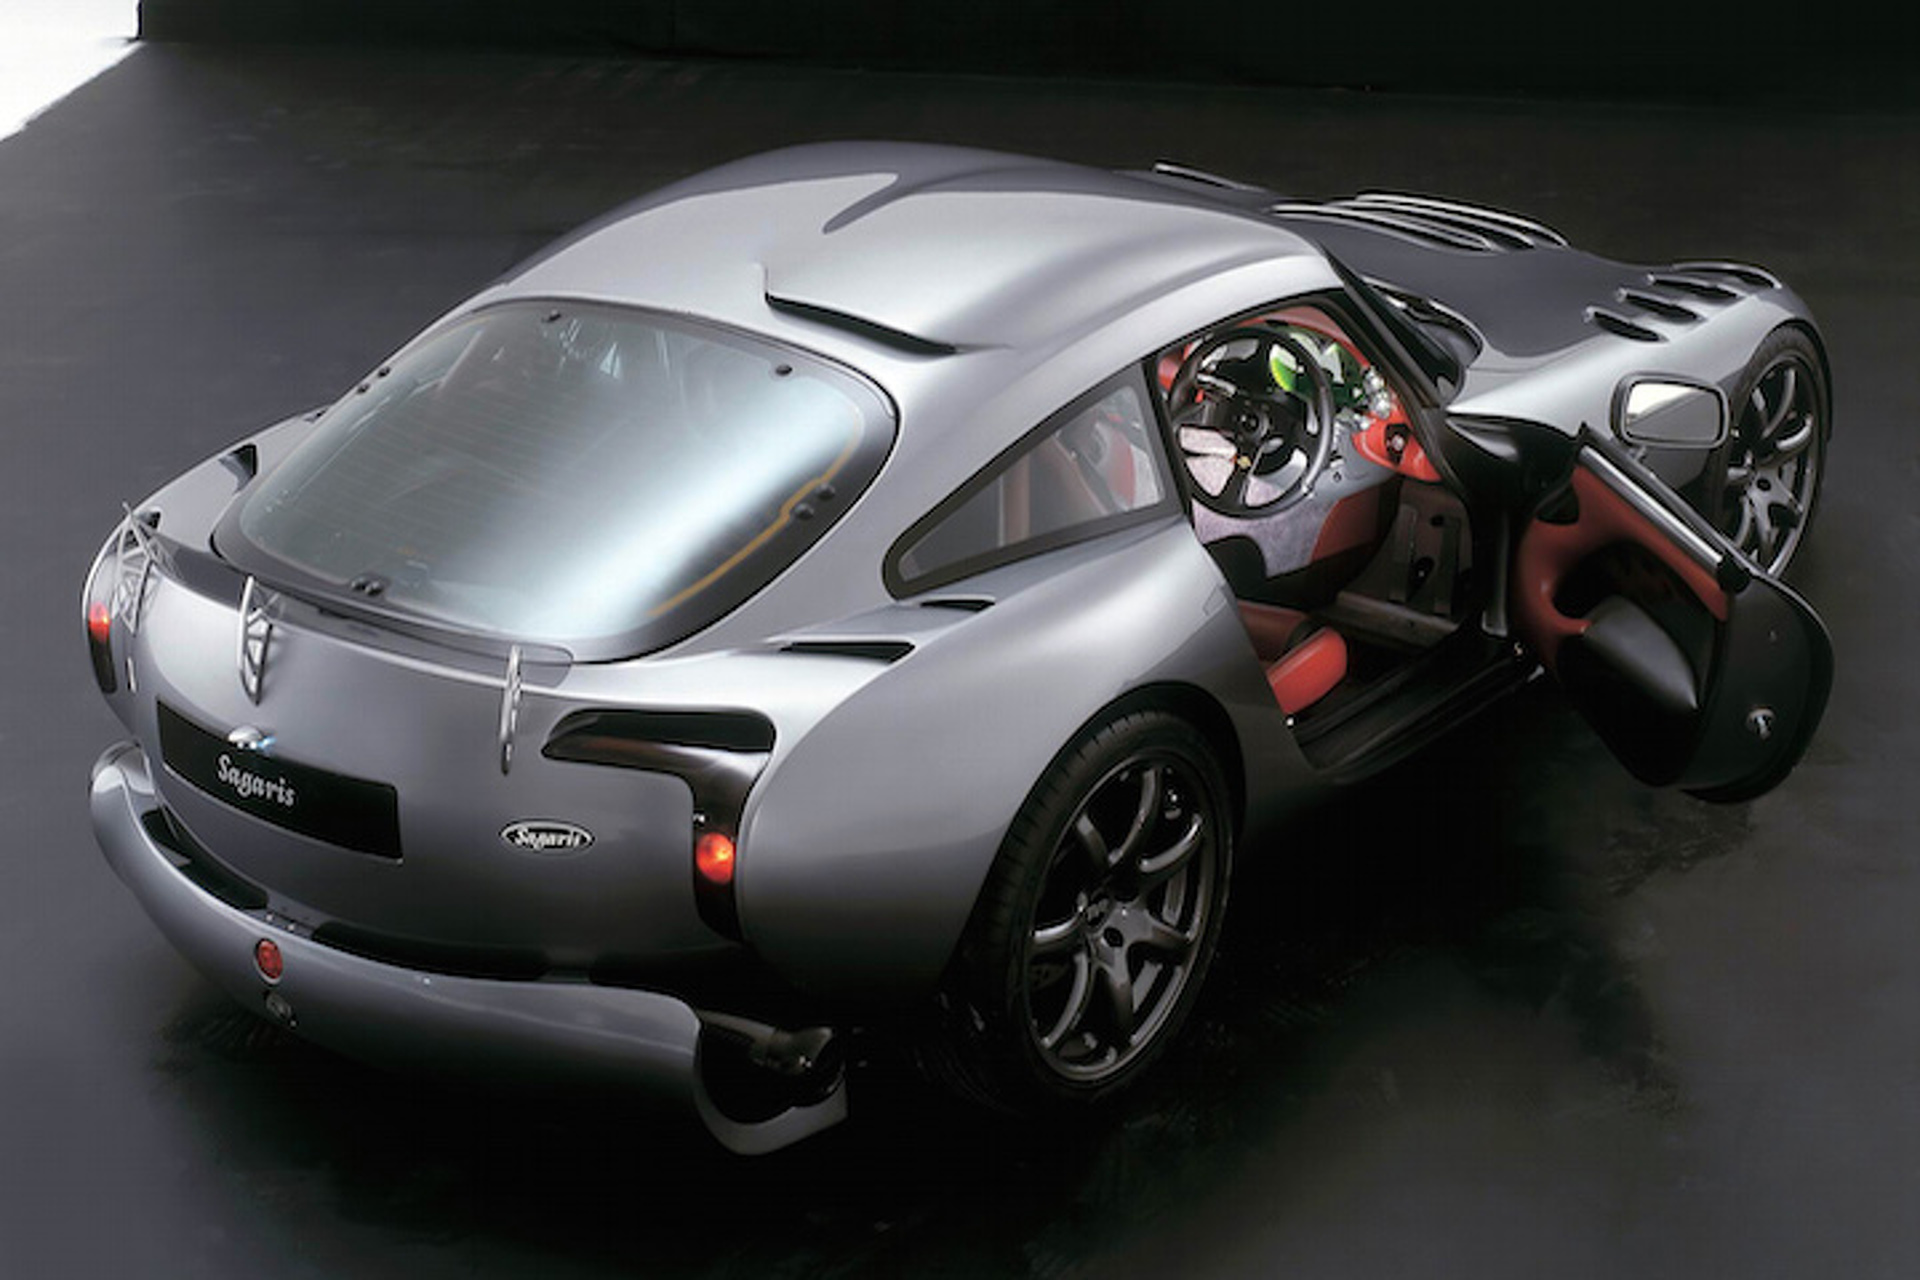 TVR is Completely Sold Out of Its V8 Sports Car—And It's Not Even Built